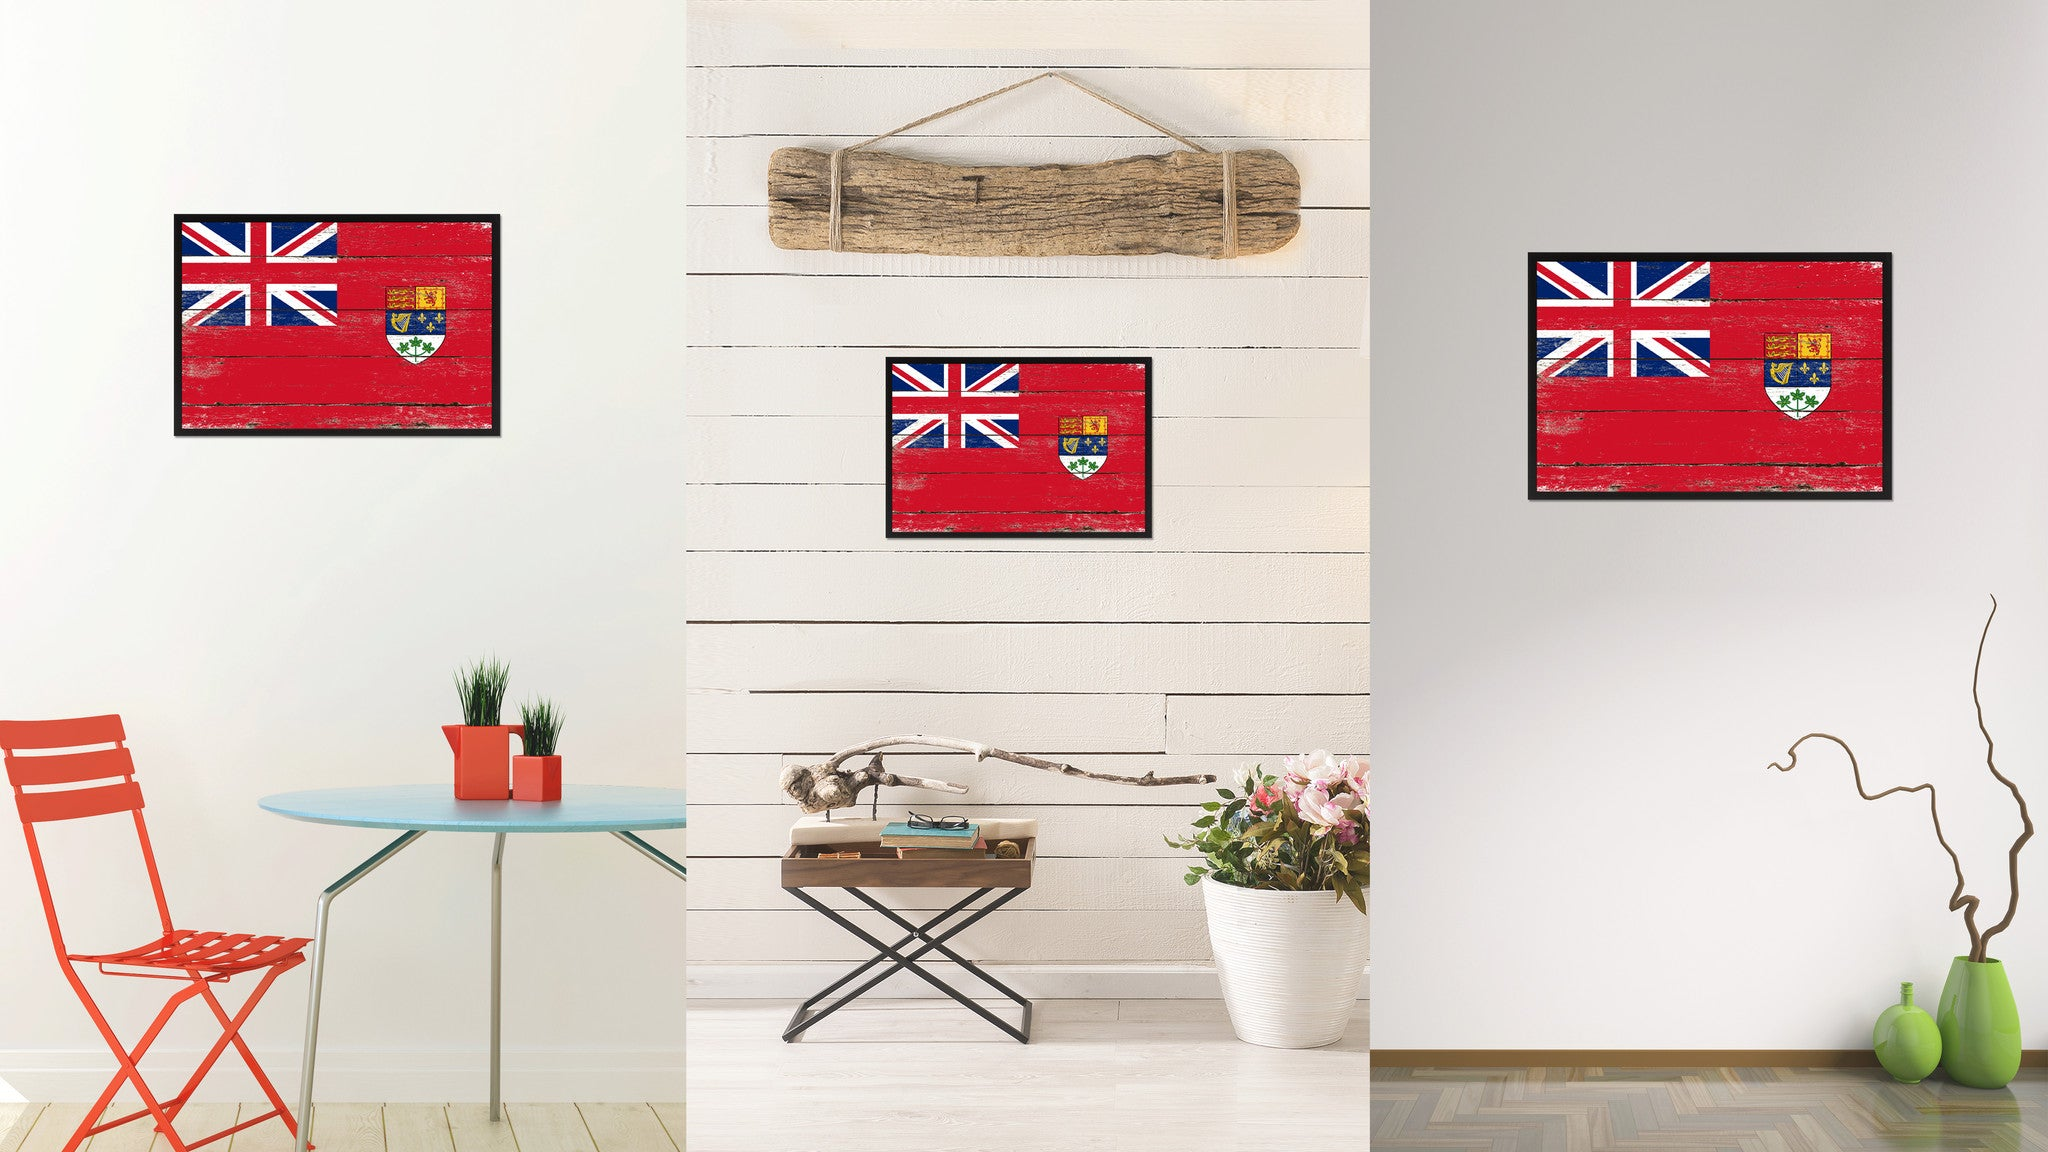 Canadian Red Ensign City Canada Country Flag Vintage Canvas Print With  Black Picture Frame Home Decor